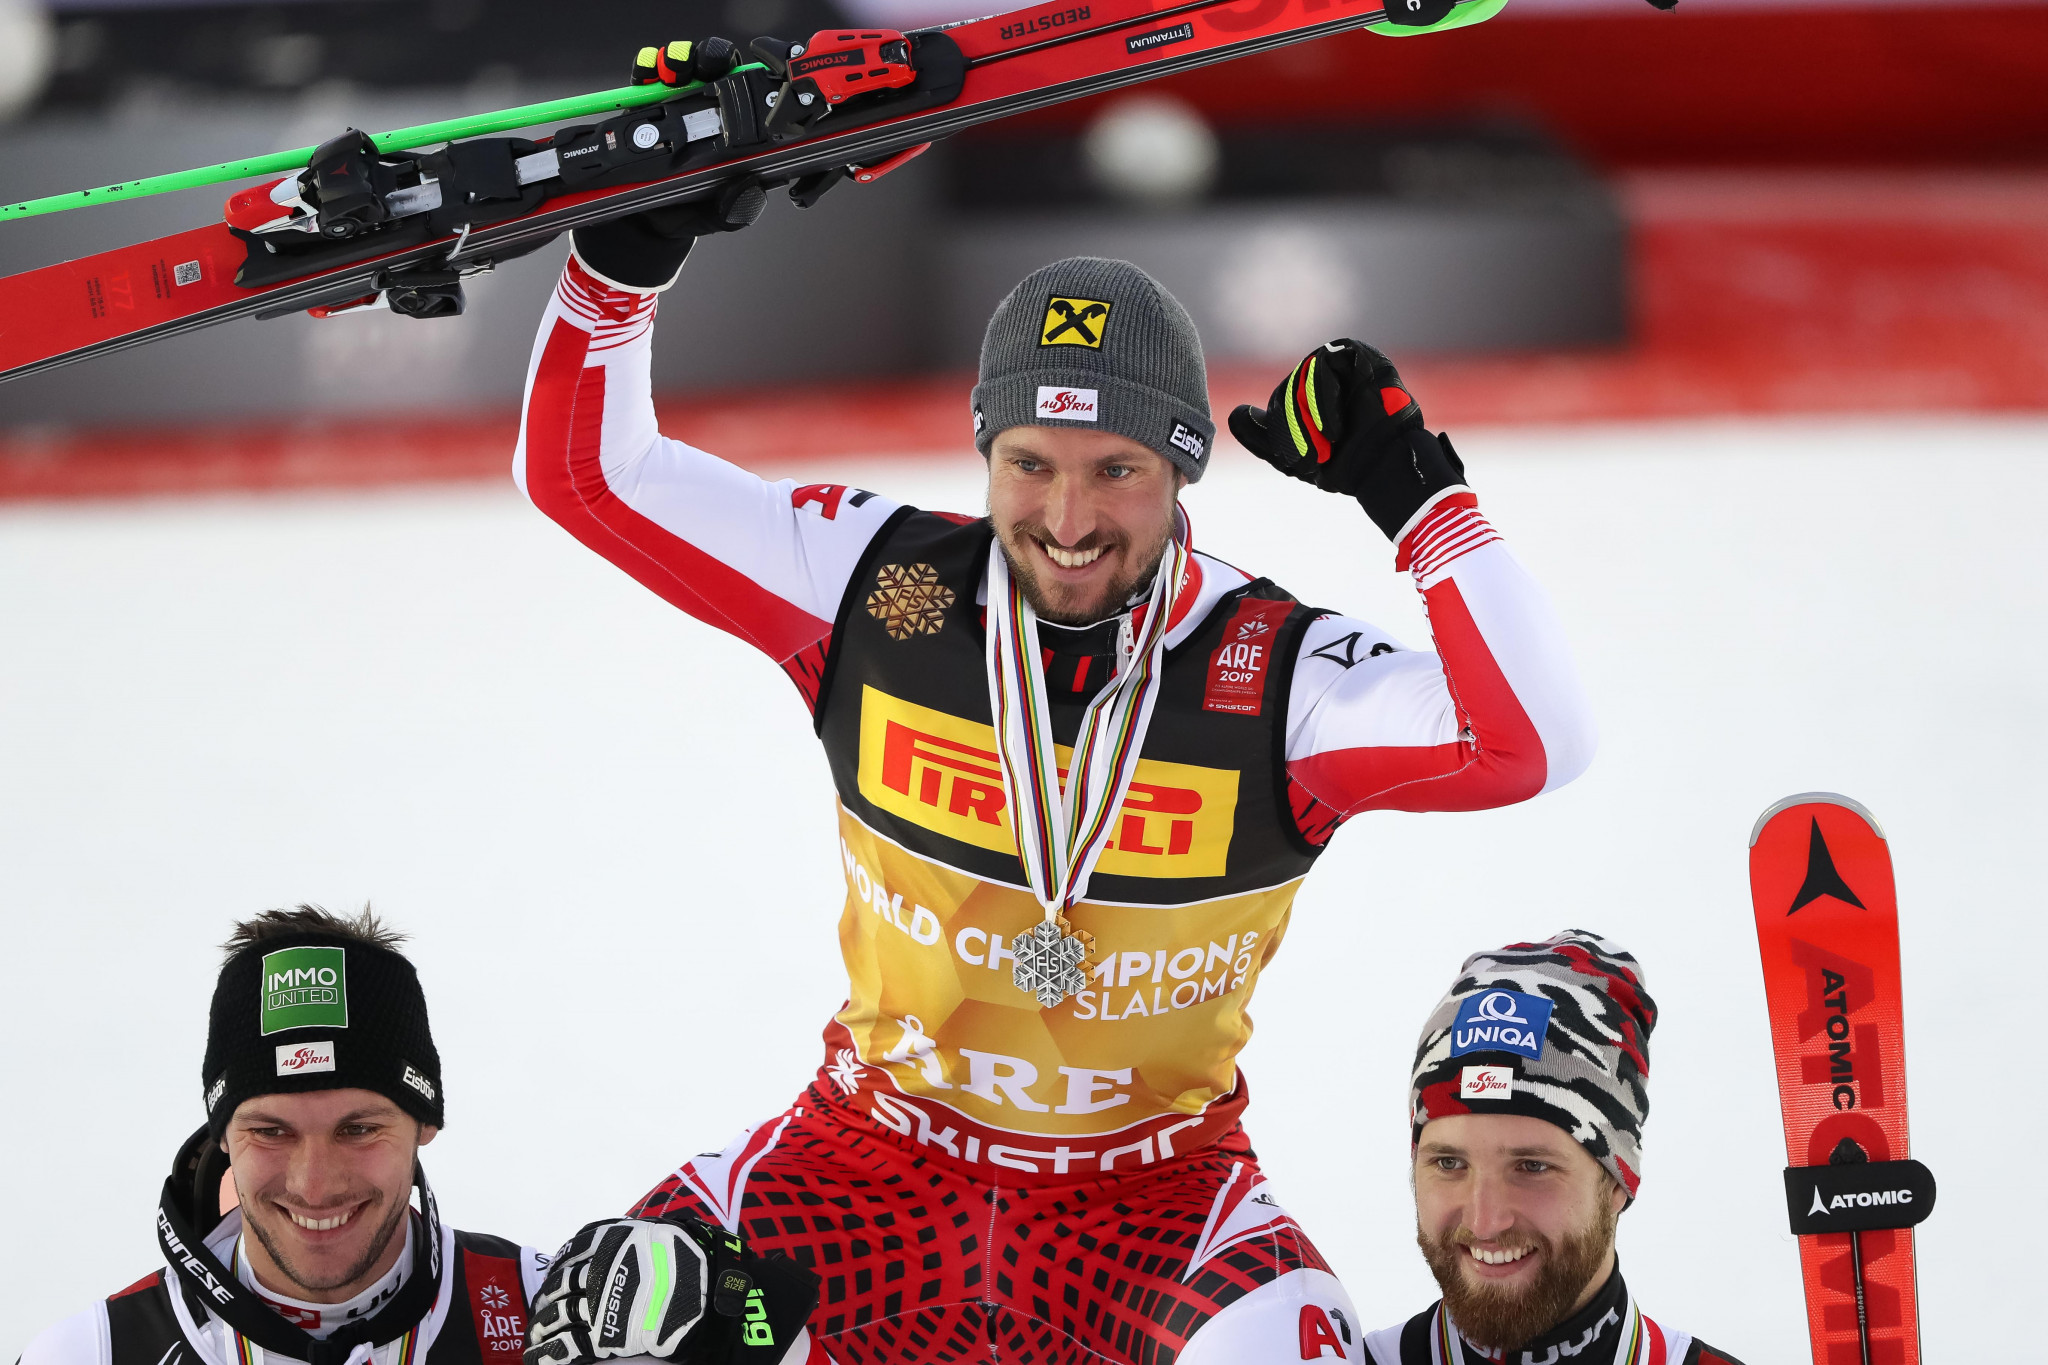 Hirscher leads Austrian slalom podium sweep as FIS Alpine World Ski Championships conclude